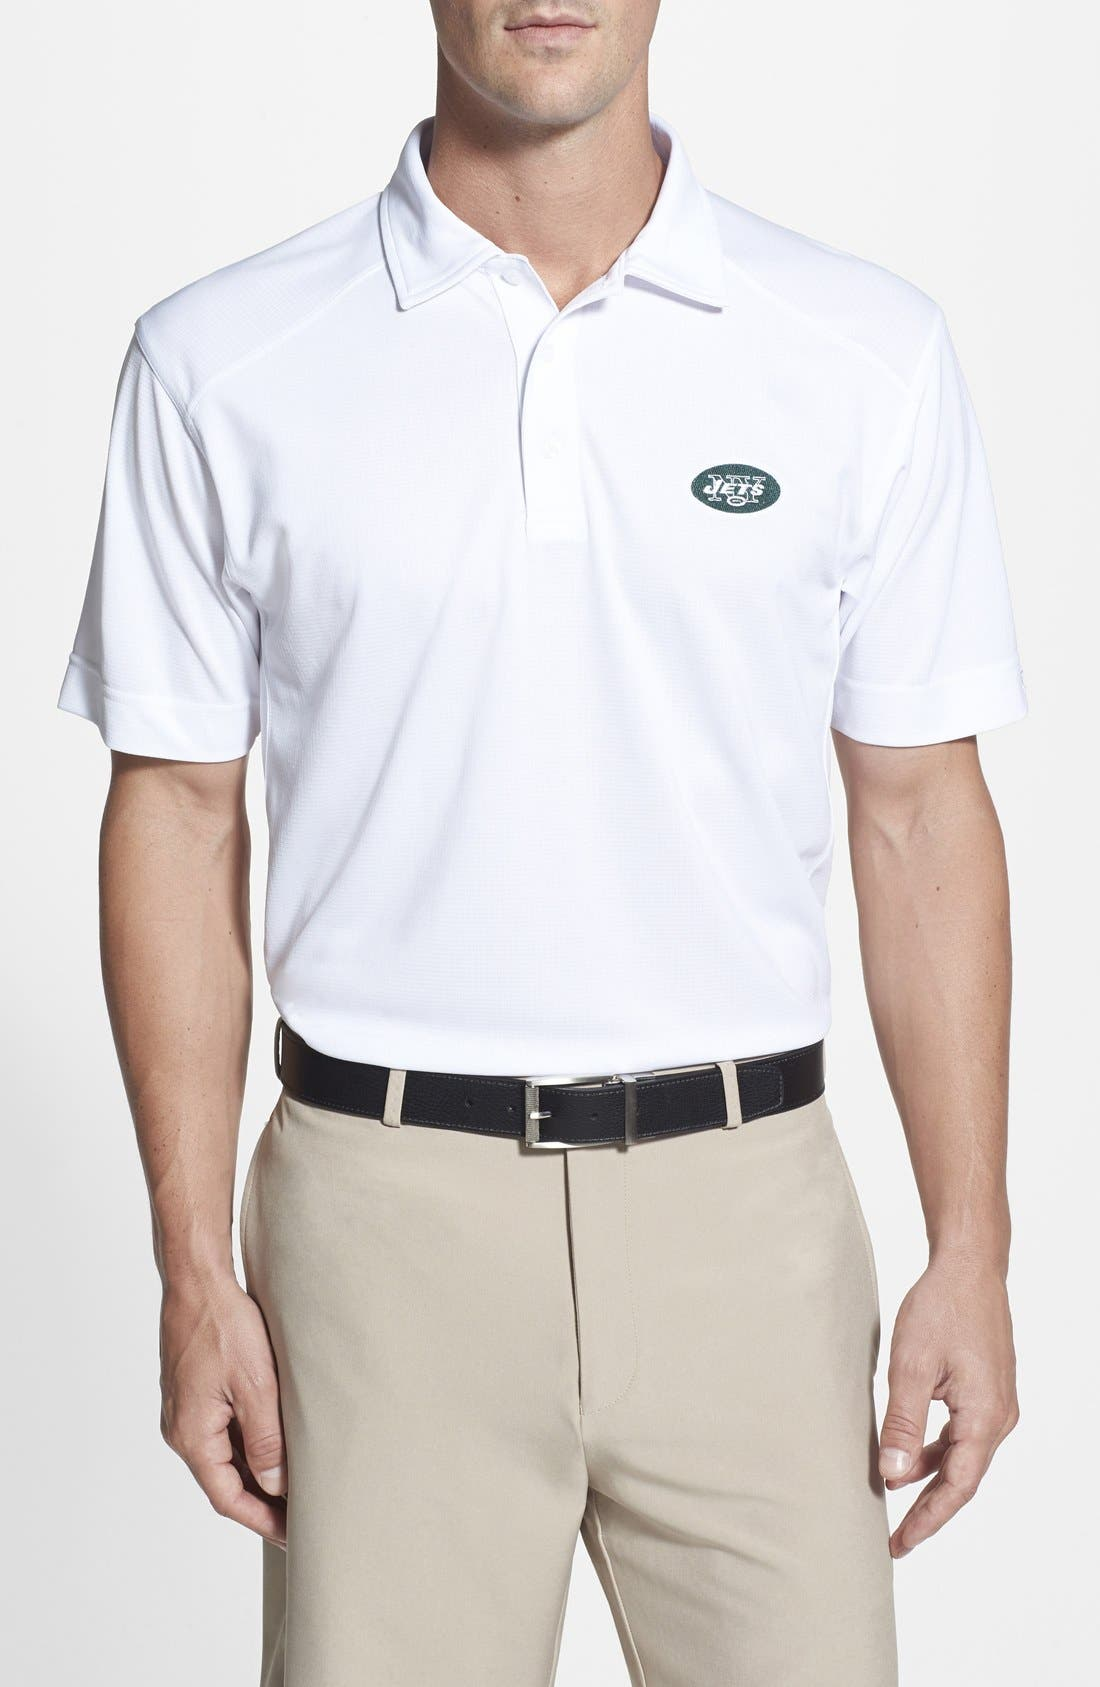 Alternate Image 1 Selected - Cutter & Buck New York Jets - Genre DryTec Moisture Wicking Polo